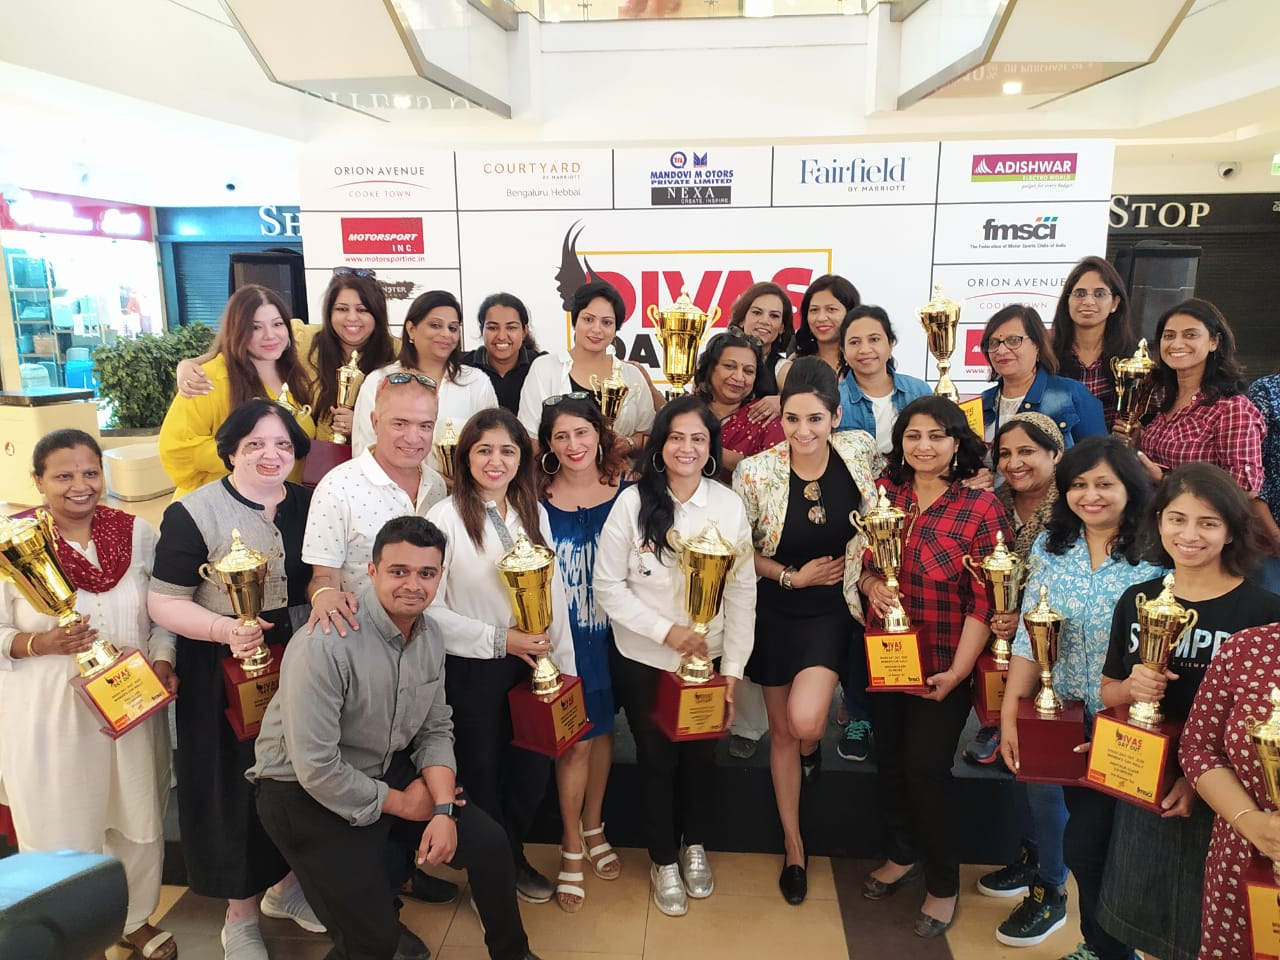 Women's Car Rally organised by Orion Avenue Mall to mark International Women's Day.